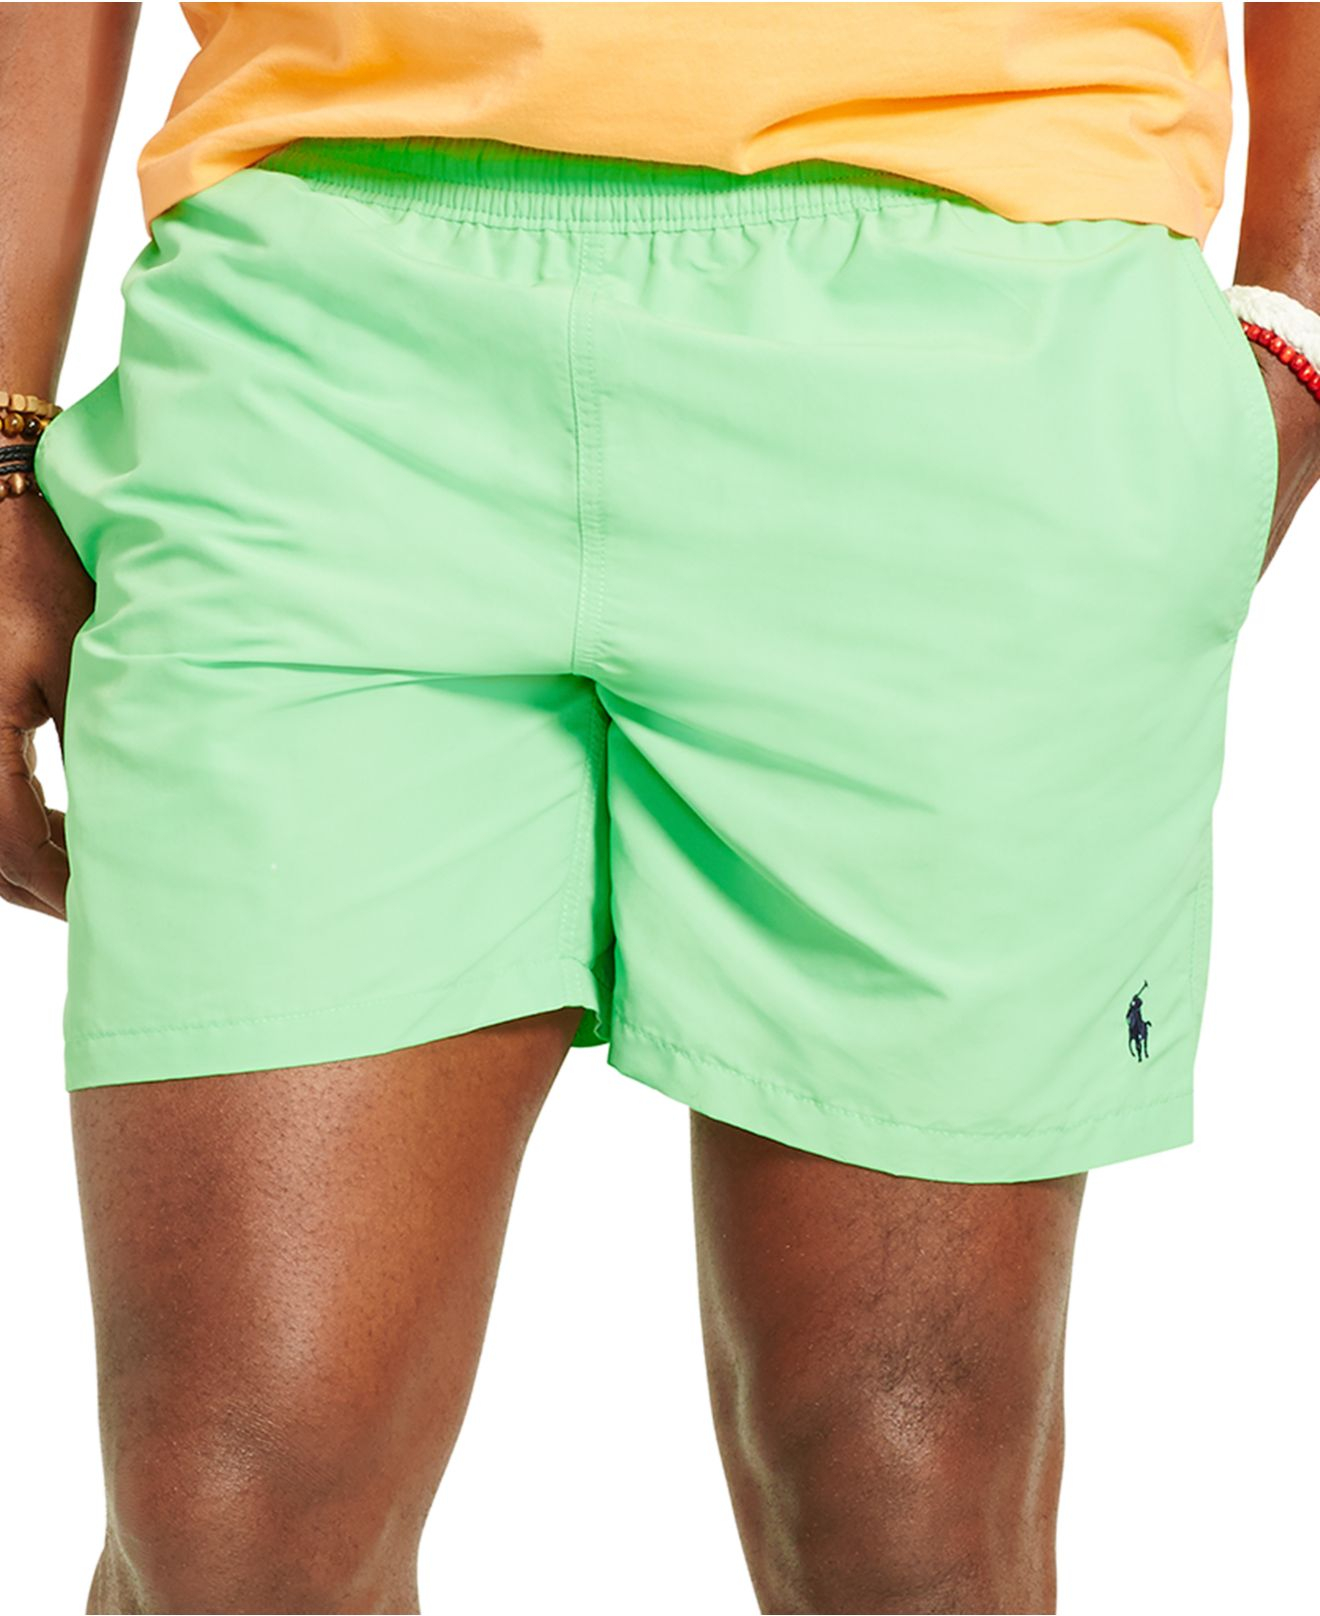 8b3e99b029 Polo Ralph Lauren Big & Tall Hawaiian Swim Trunks in Green for Men ...